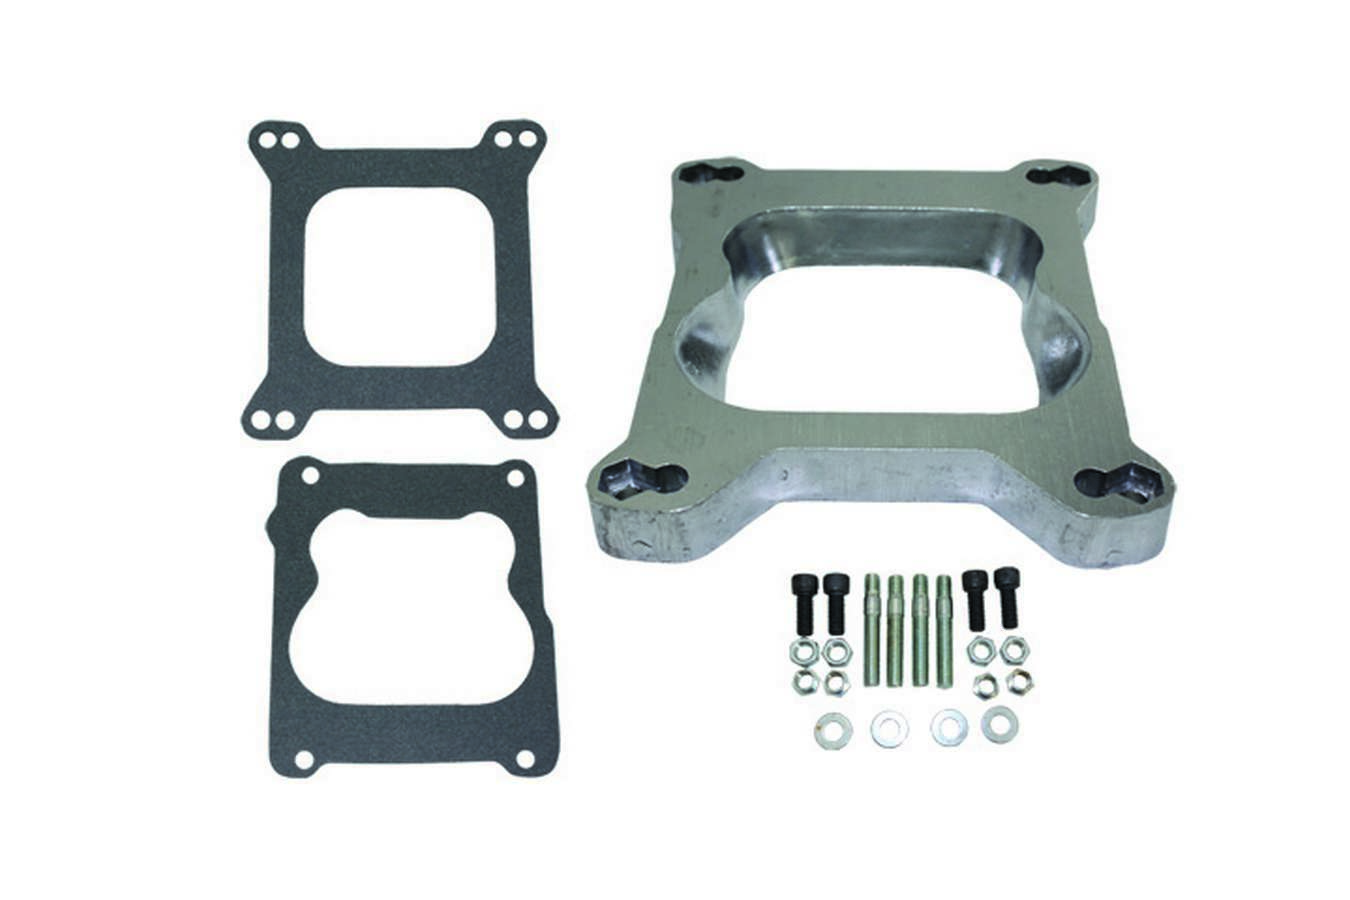 Specialty Products 9130 Carburetor Adapter, 1 in Thick, Open, Spread Bore to Square Bore, Gaskets / Hardware Included, Aluminum, Natural, Each